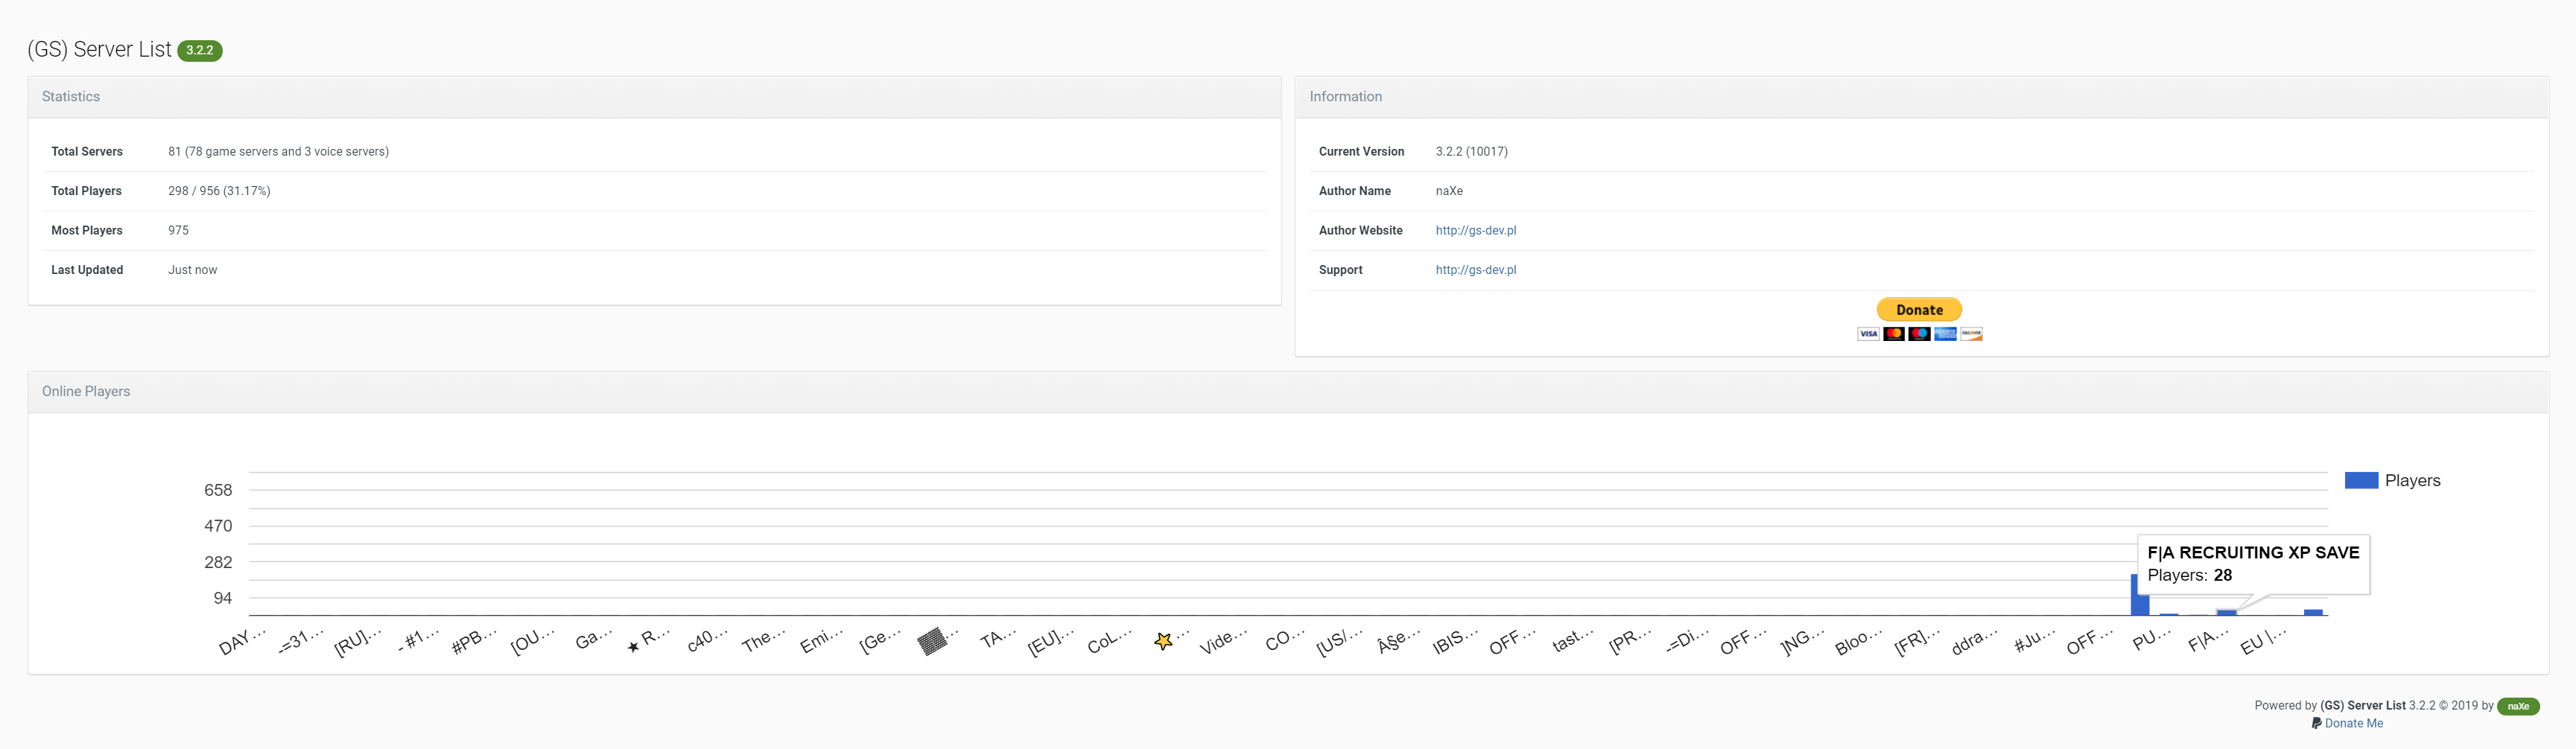 GS) Server List - Utilities and Stats - Invision Community